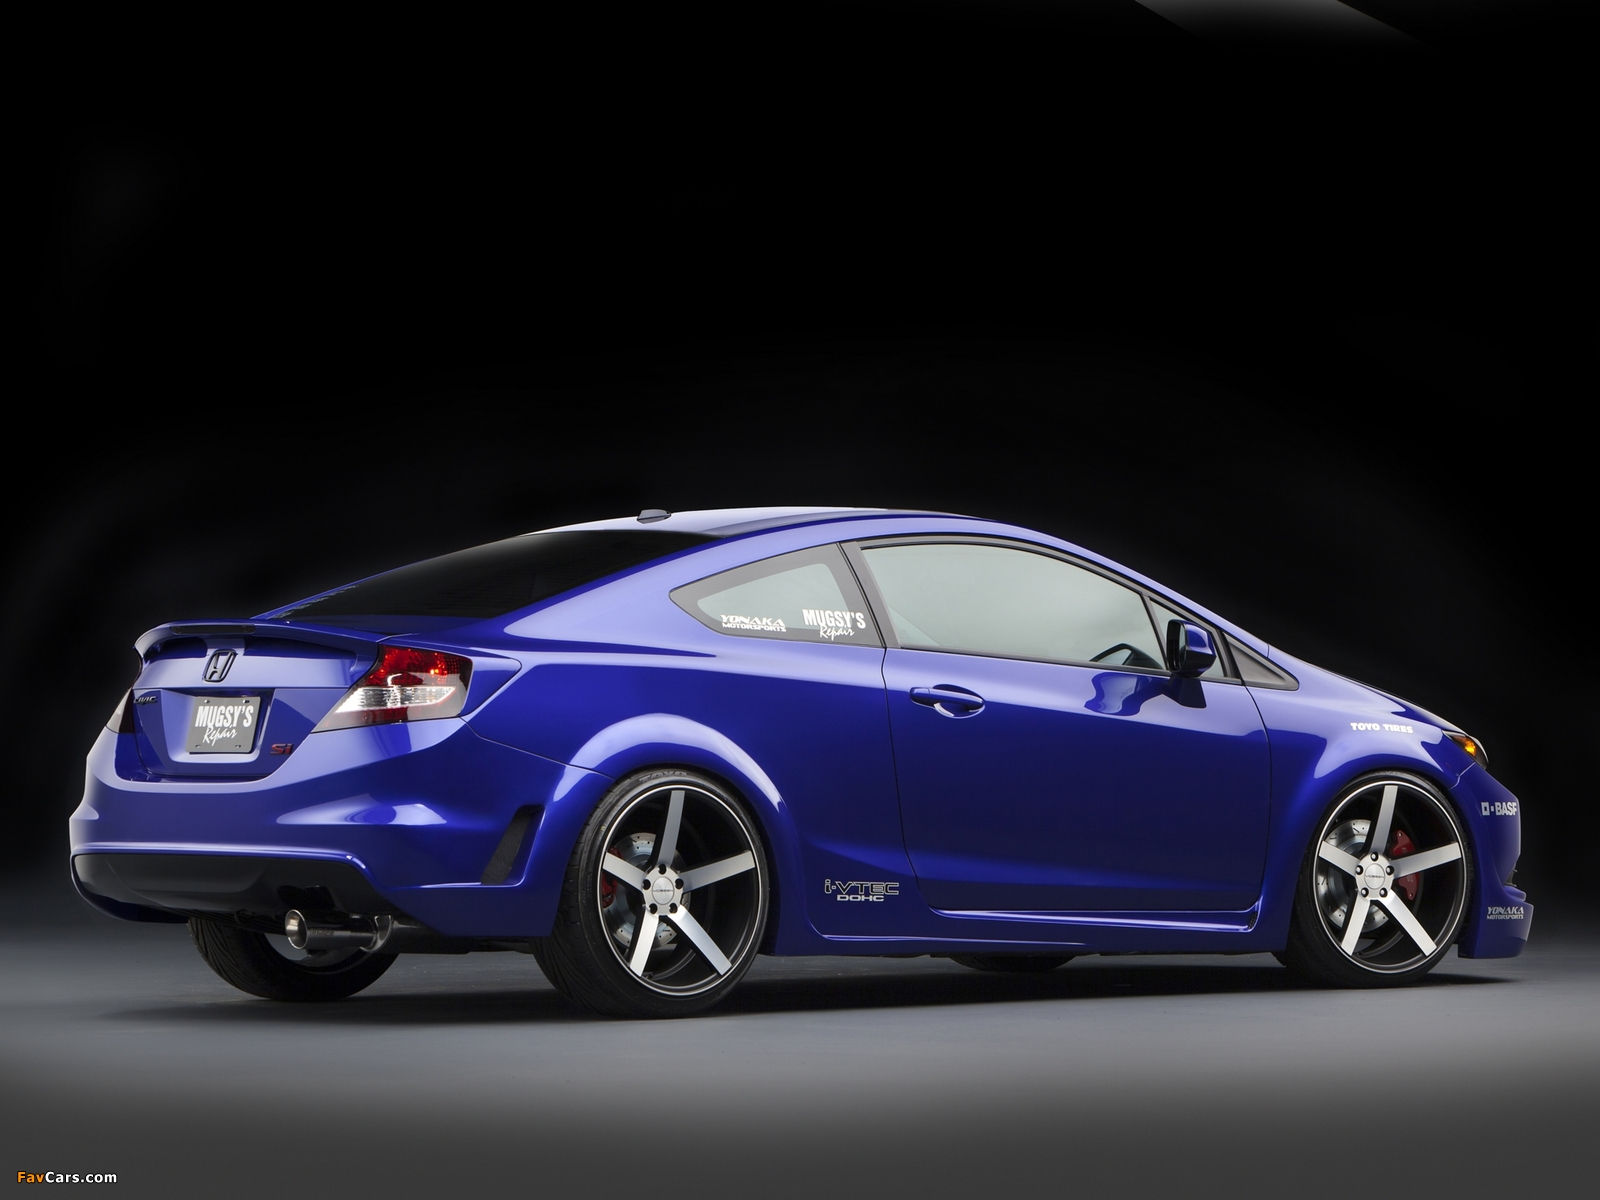 Photos Of Honda Civic Si Coupe By Fox Marketing 2011